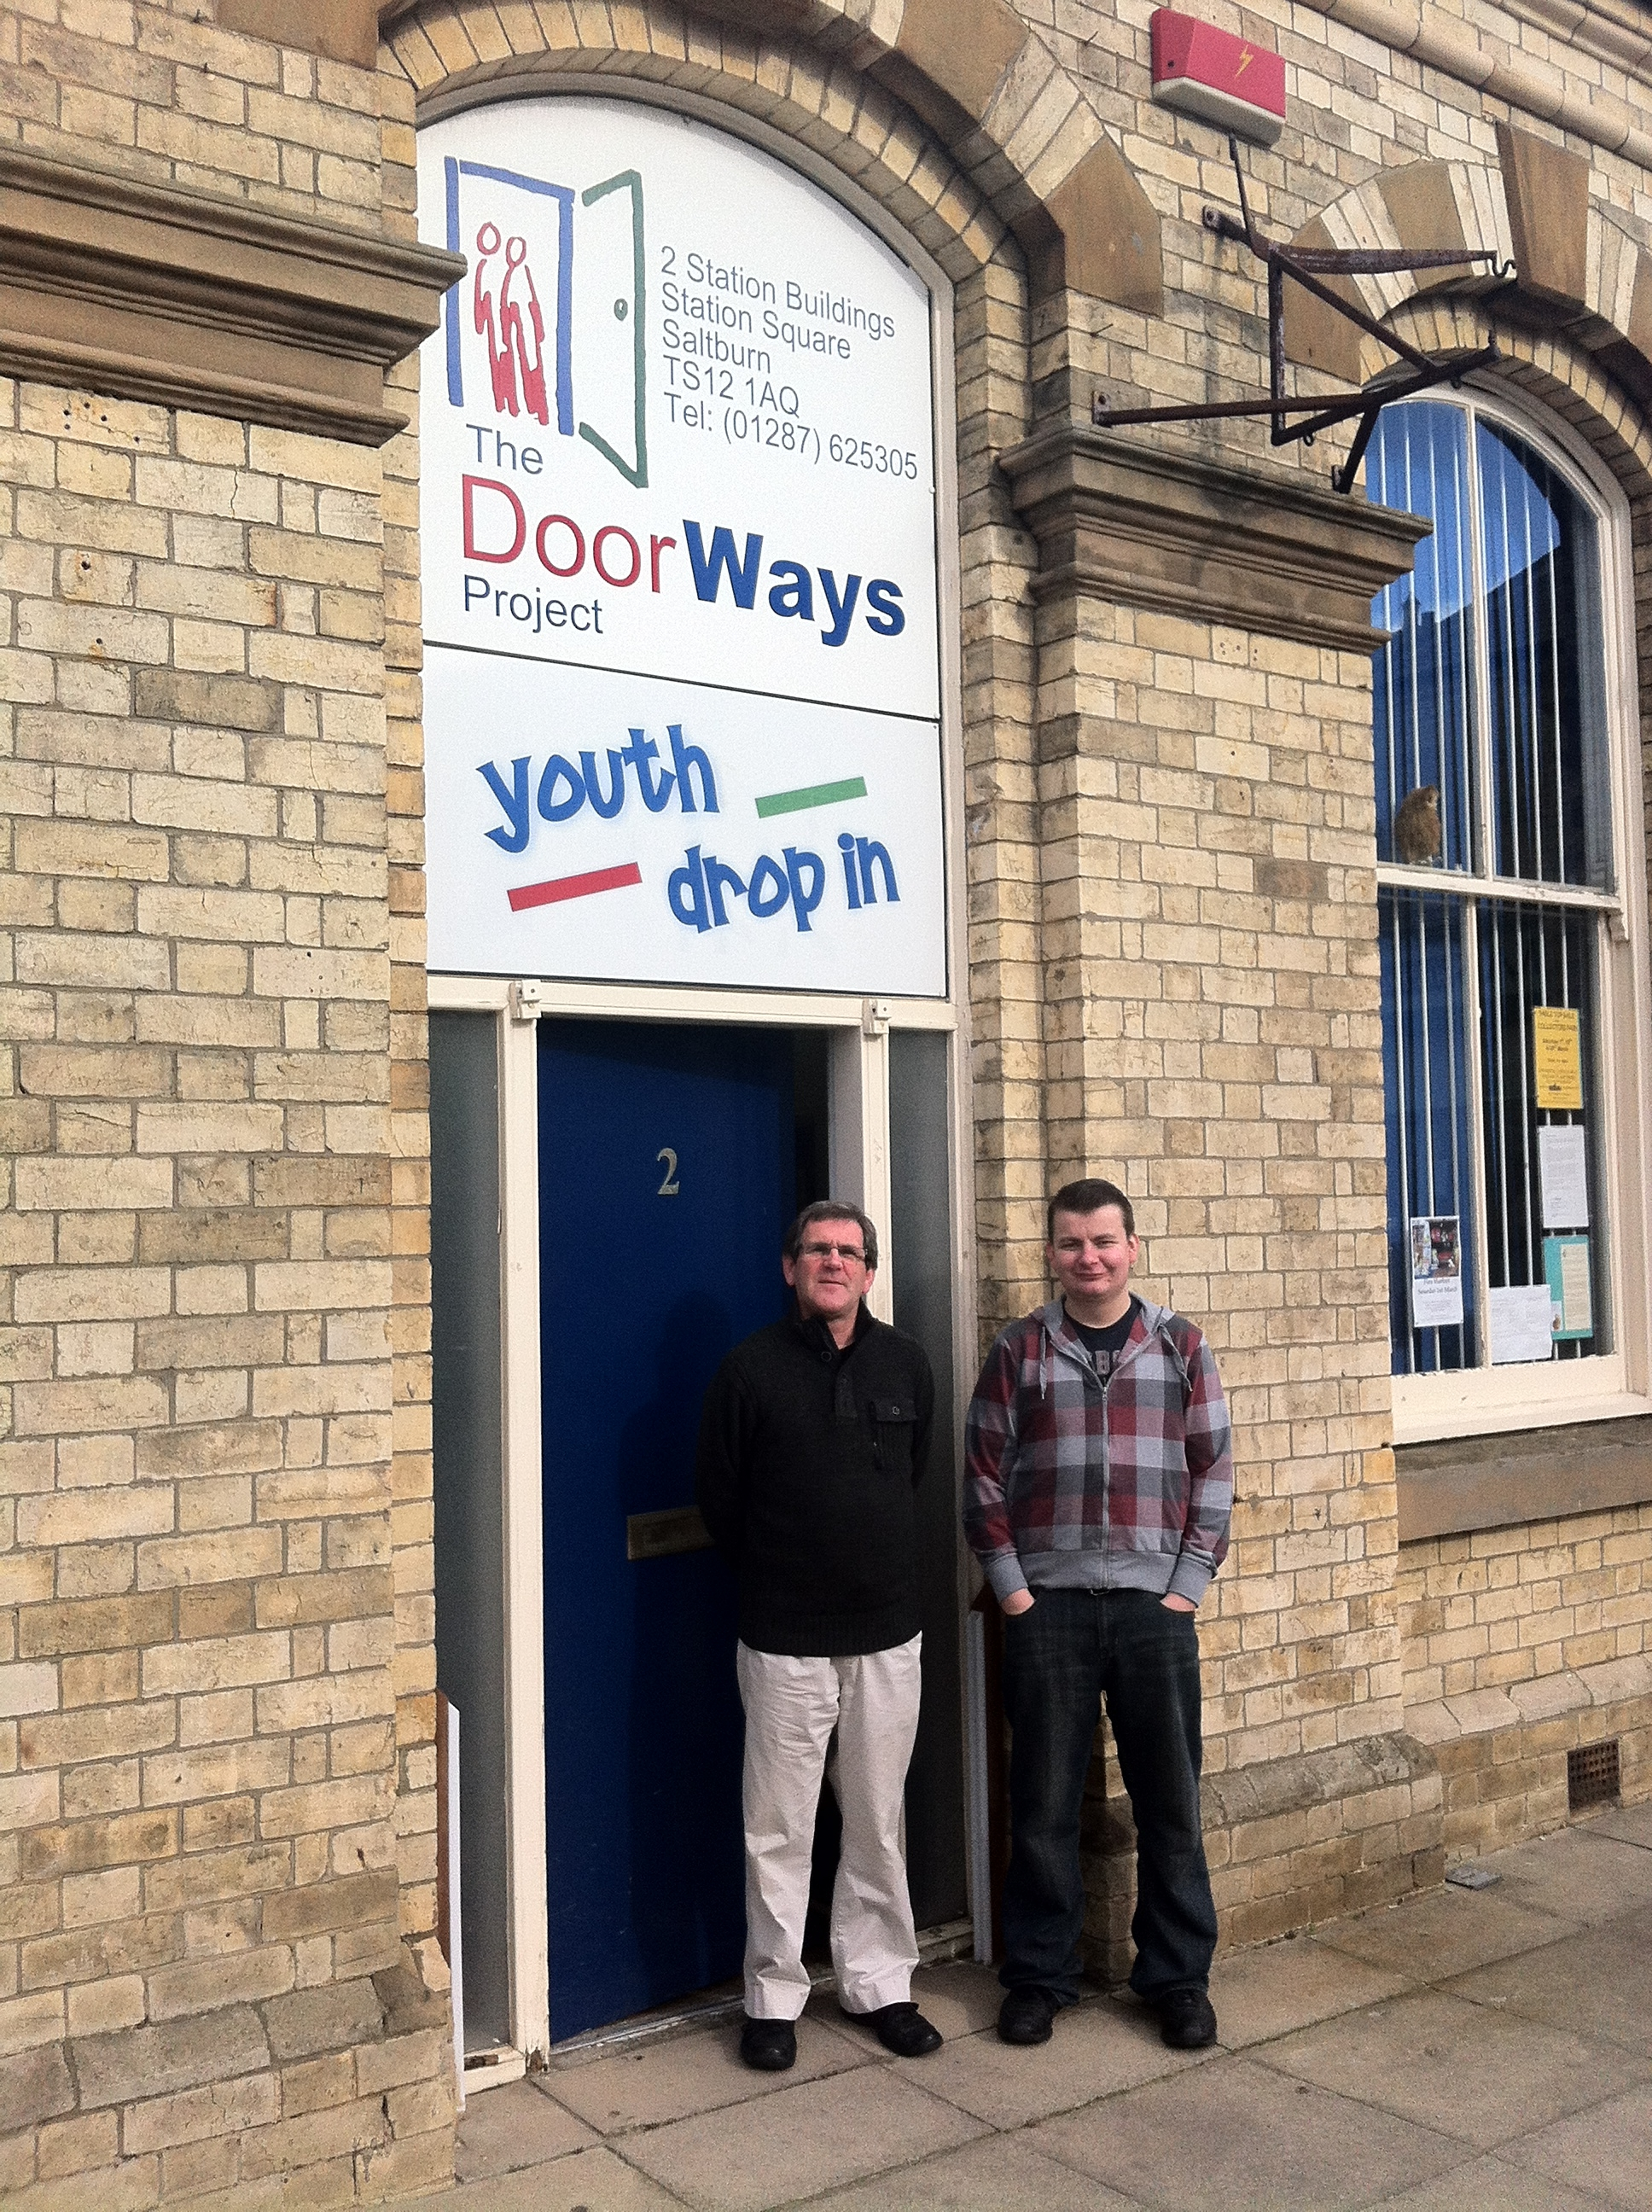 (L-R) DoorWays project co-ordinator, John Pearson and youth support worker, John Thompson, who is losing his job due to funding cuts